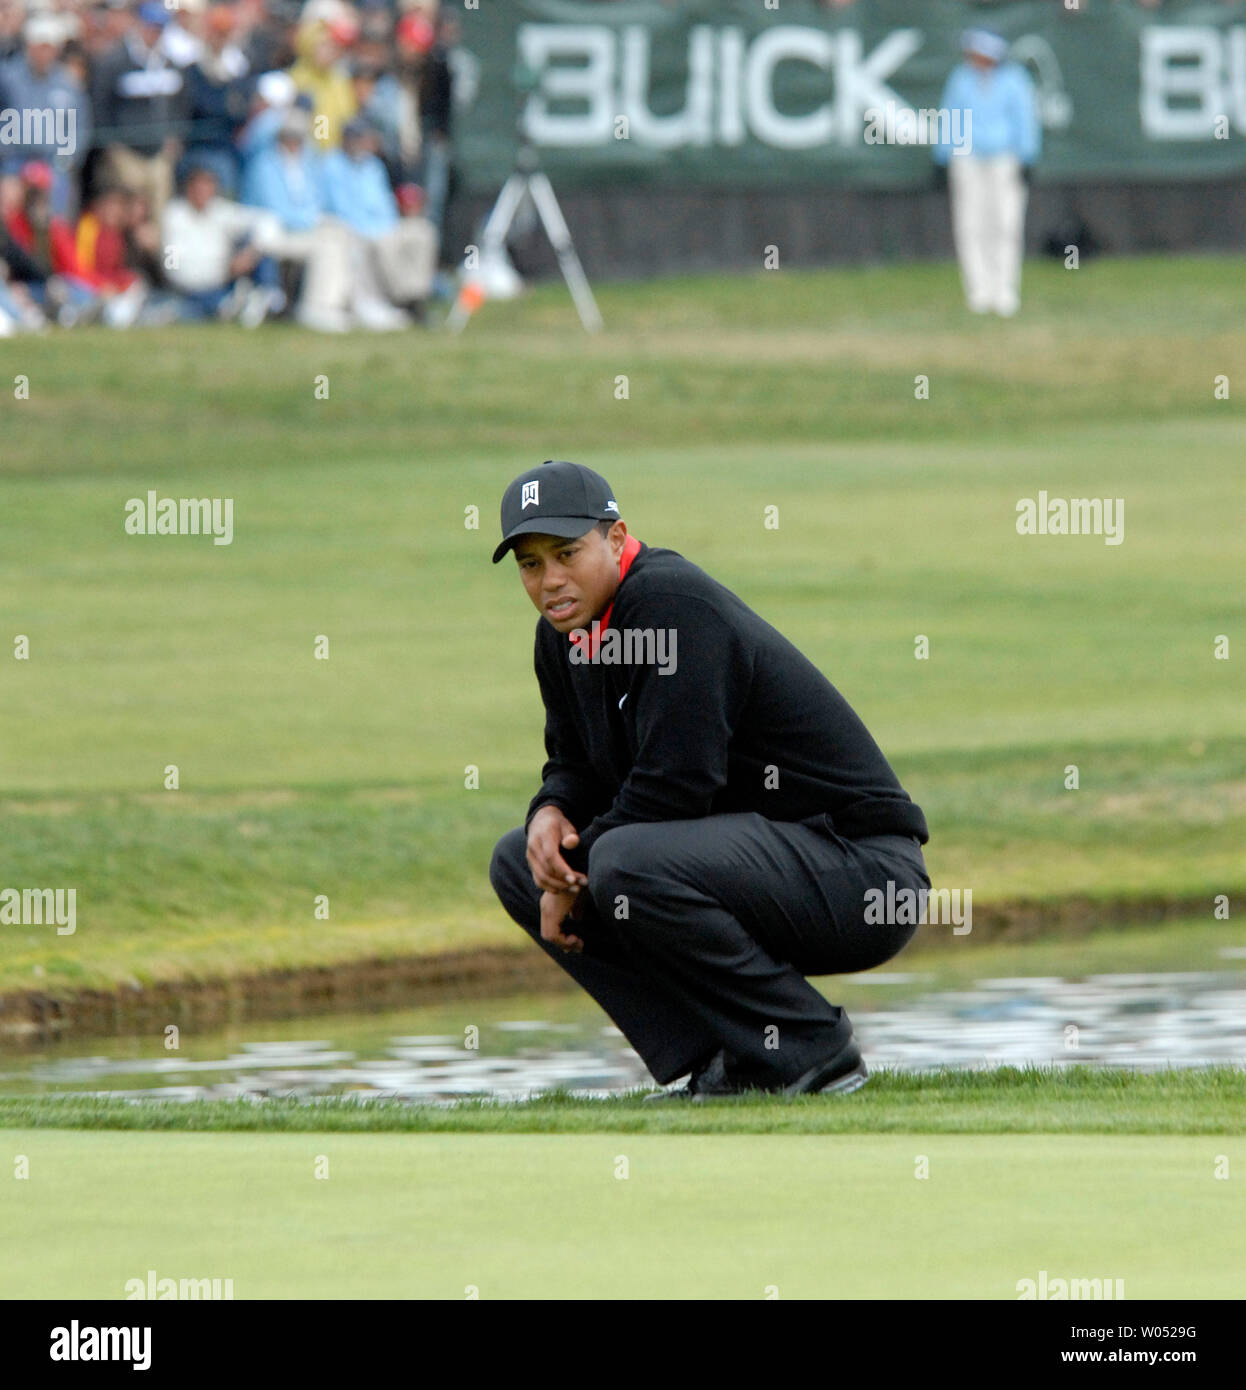 Golfer Tiger Woods contemplates his ball from the rough on the 18th hole at Torrey Pines January 28, 2007 during the final round of the Buick Invitational golf tournament in San Diego. Woods won his 7th consecutive PGA event with a final round 66 to finish 15-under par. (UPI Photo/Earl S. Cryer) - Stock Image